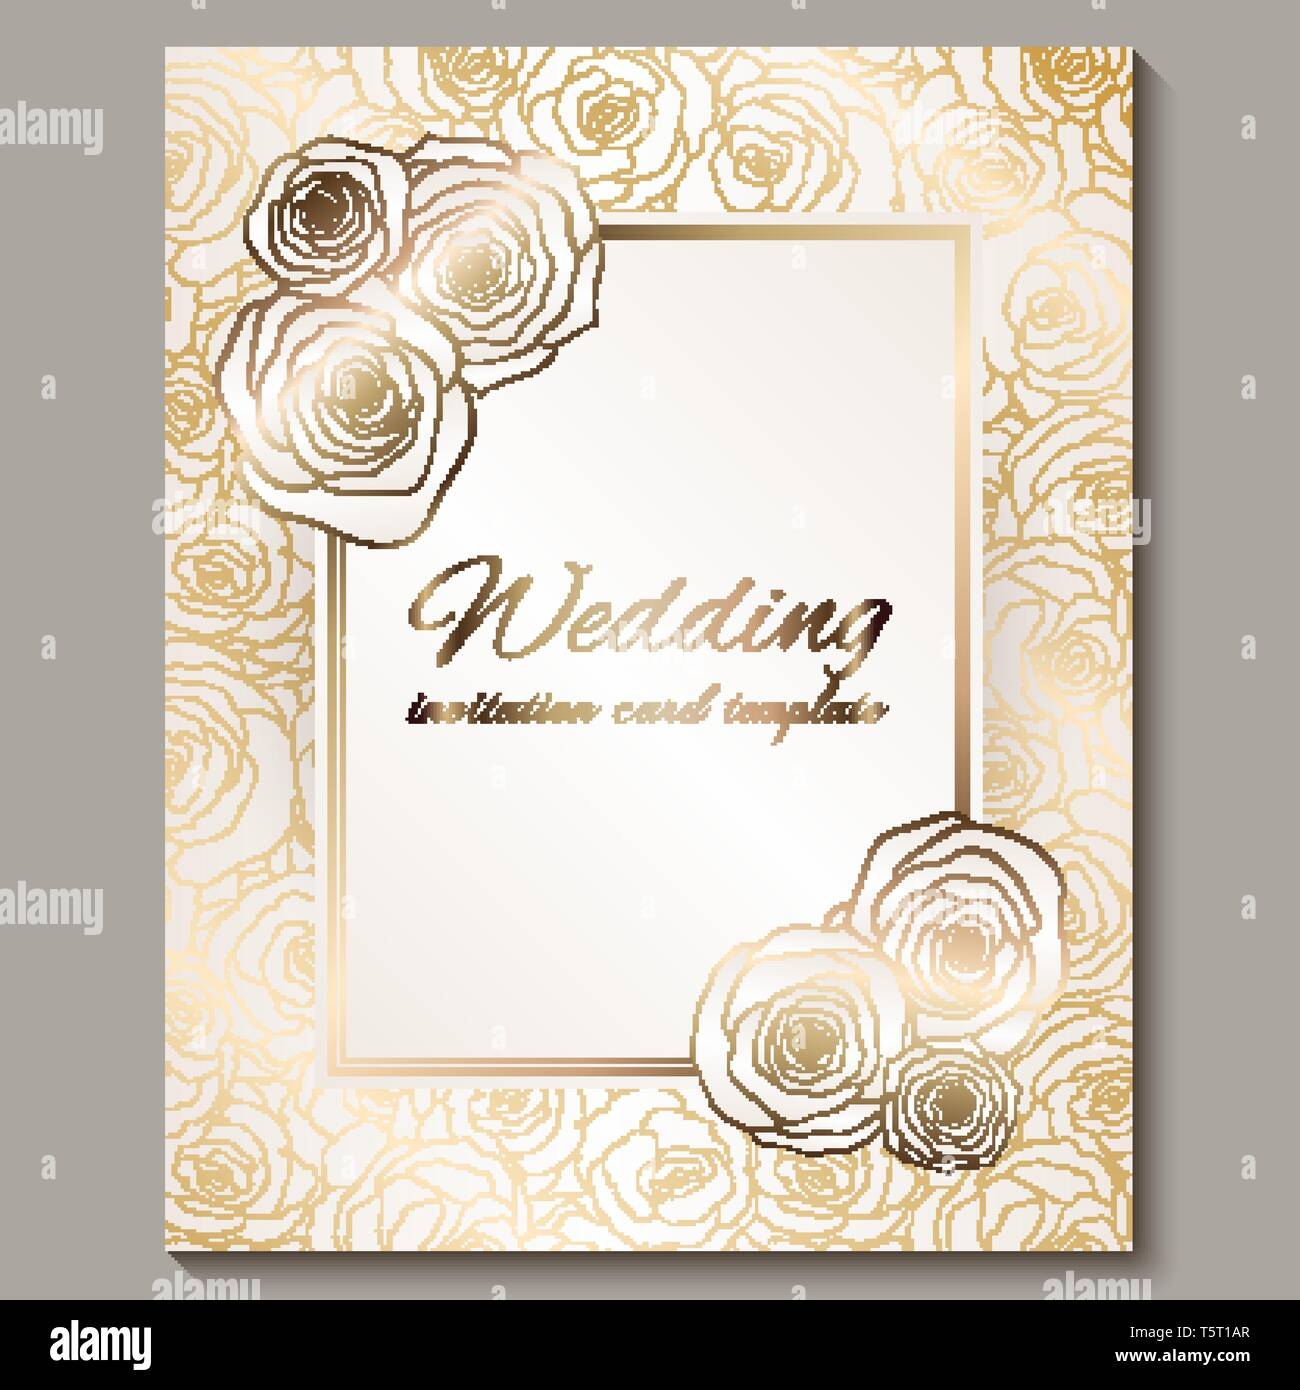 luxury gold vintage wedding invitation floral background with place for text lacy foliage made of roses with golden shiny gradient victorian wallpa stock vector image art alamy https www alamy com luxury gold vintage wedding invitation floral background with place for text lacy foliage made of roses with golden shiny gradient victorian wallpa image244546367 html